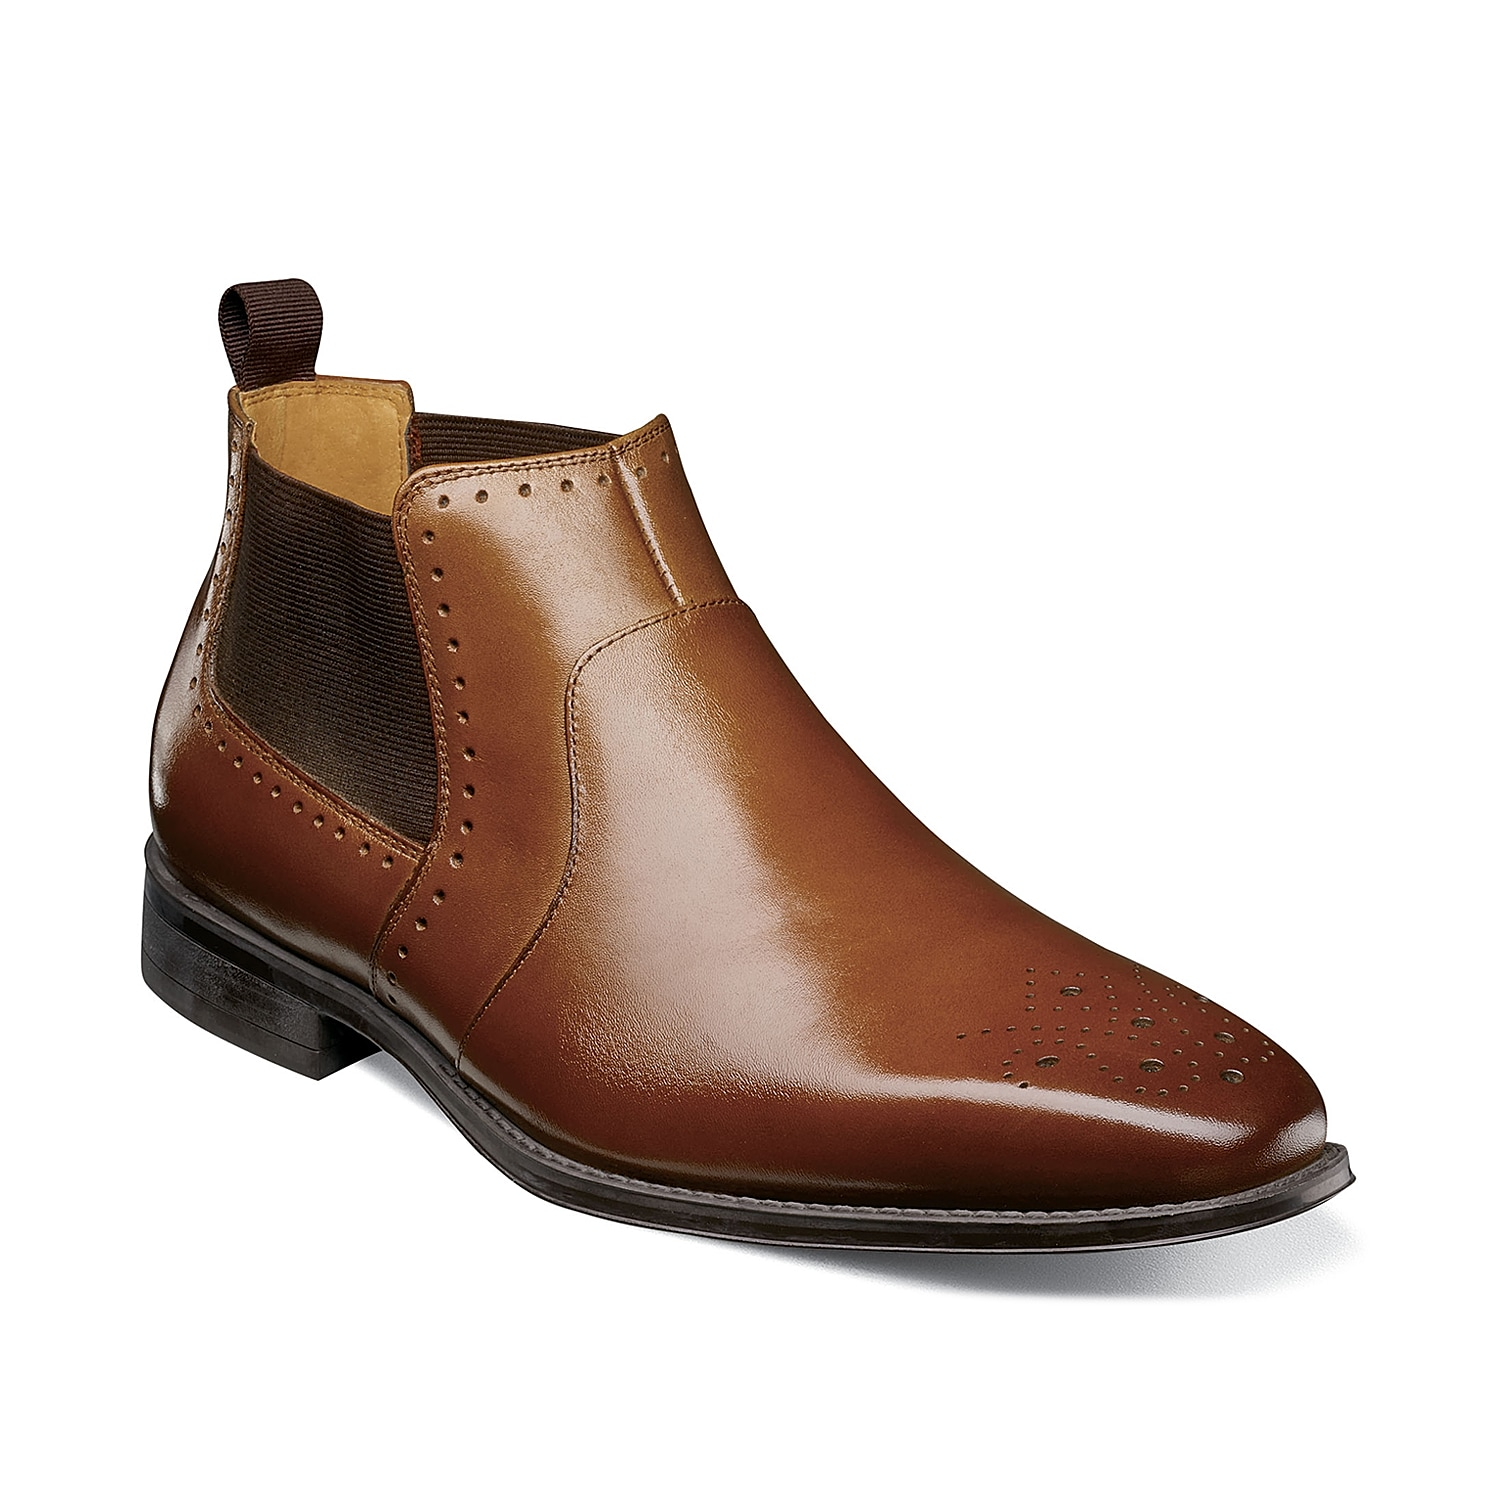 Classic meets modern in the Perrin boot from Stacy Adams. This Chelsea boot features a distinguished medallion square toe and smooth leather that complement dark wash jeans or slacks.